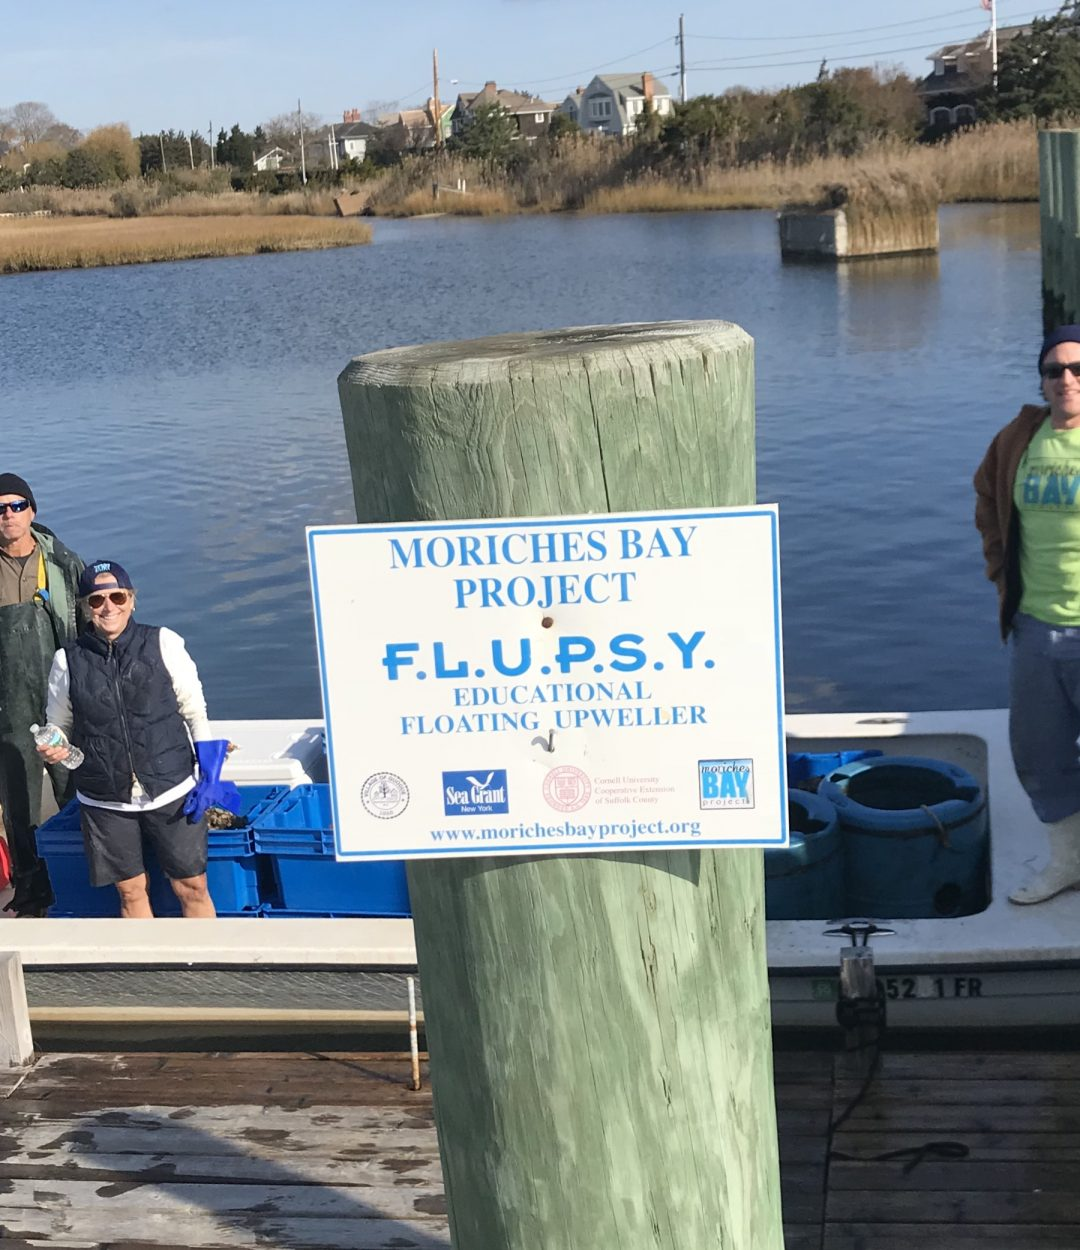 Moriches Bay Project Expressions of Gratitude